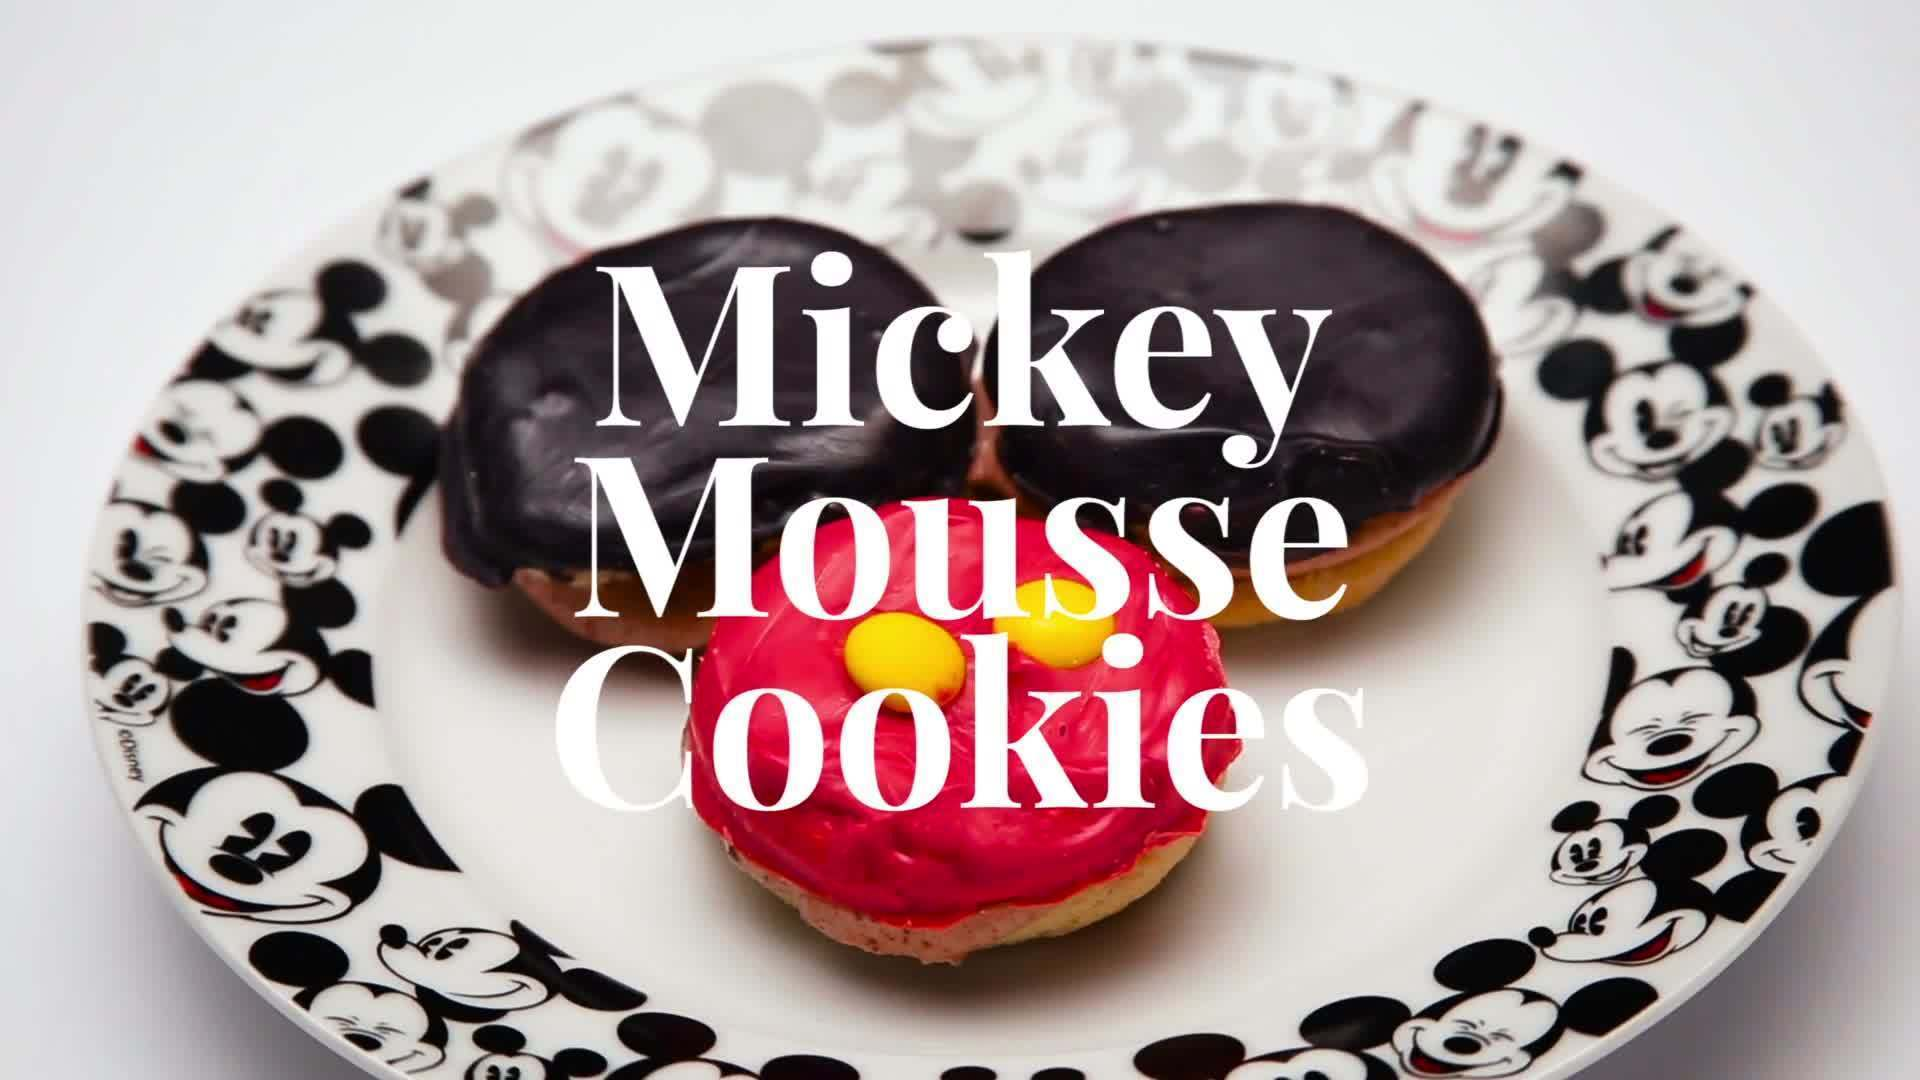 Mickey Mousse Cookie | Dishes by Disney